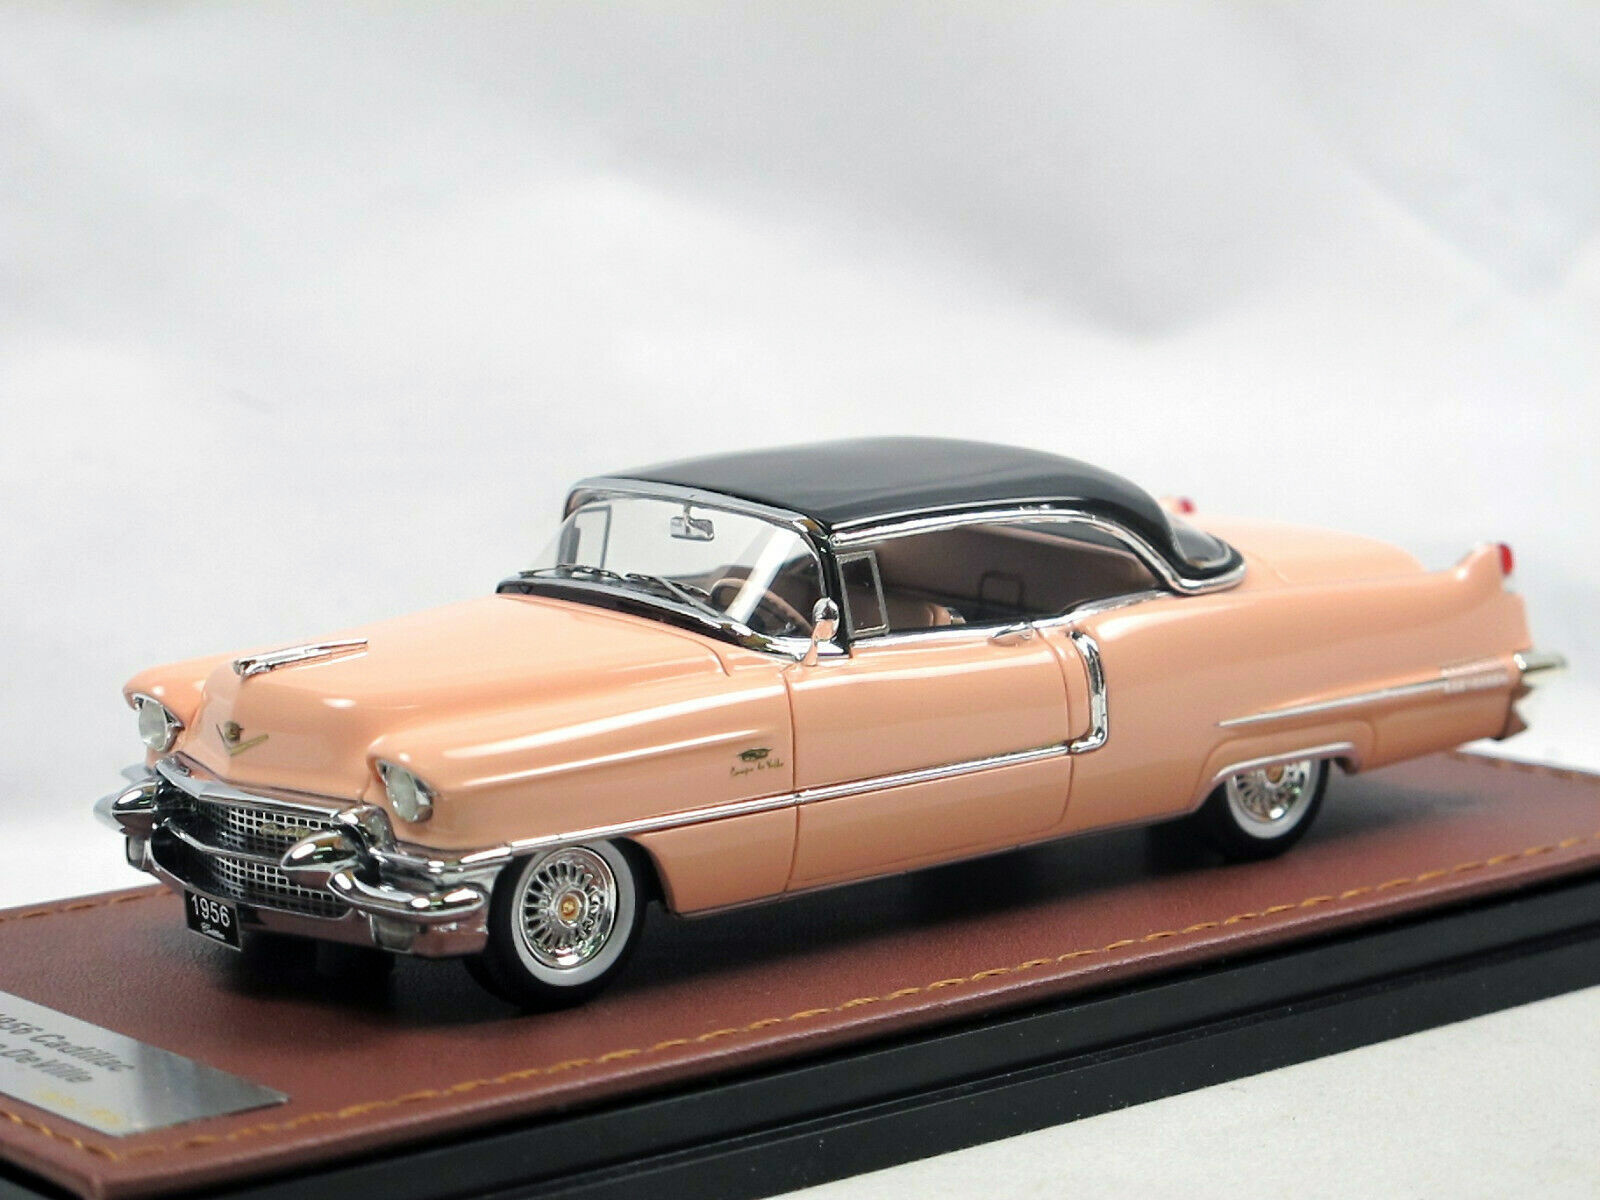 Cadillac Coupe DeVille '56 Mountain Laurel & Black_Ltd Ed 1 of 60_GLM119403